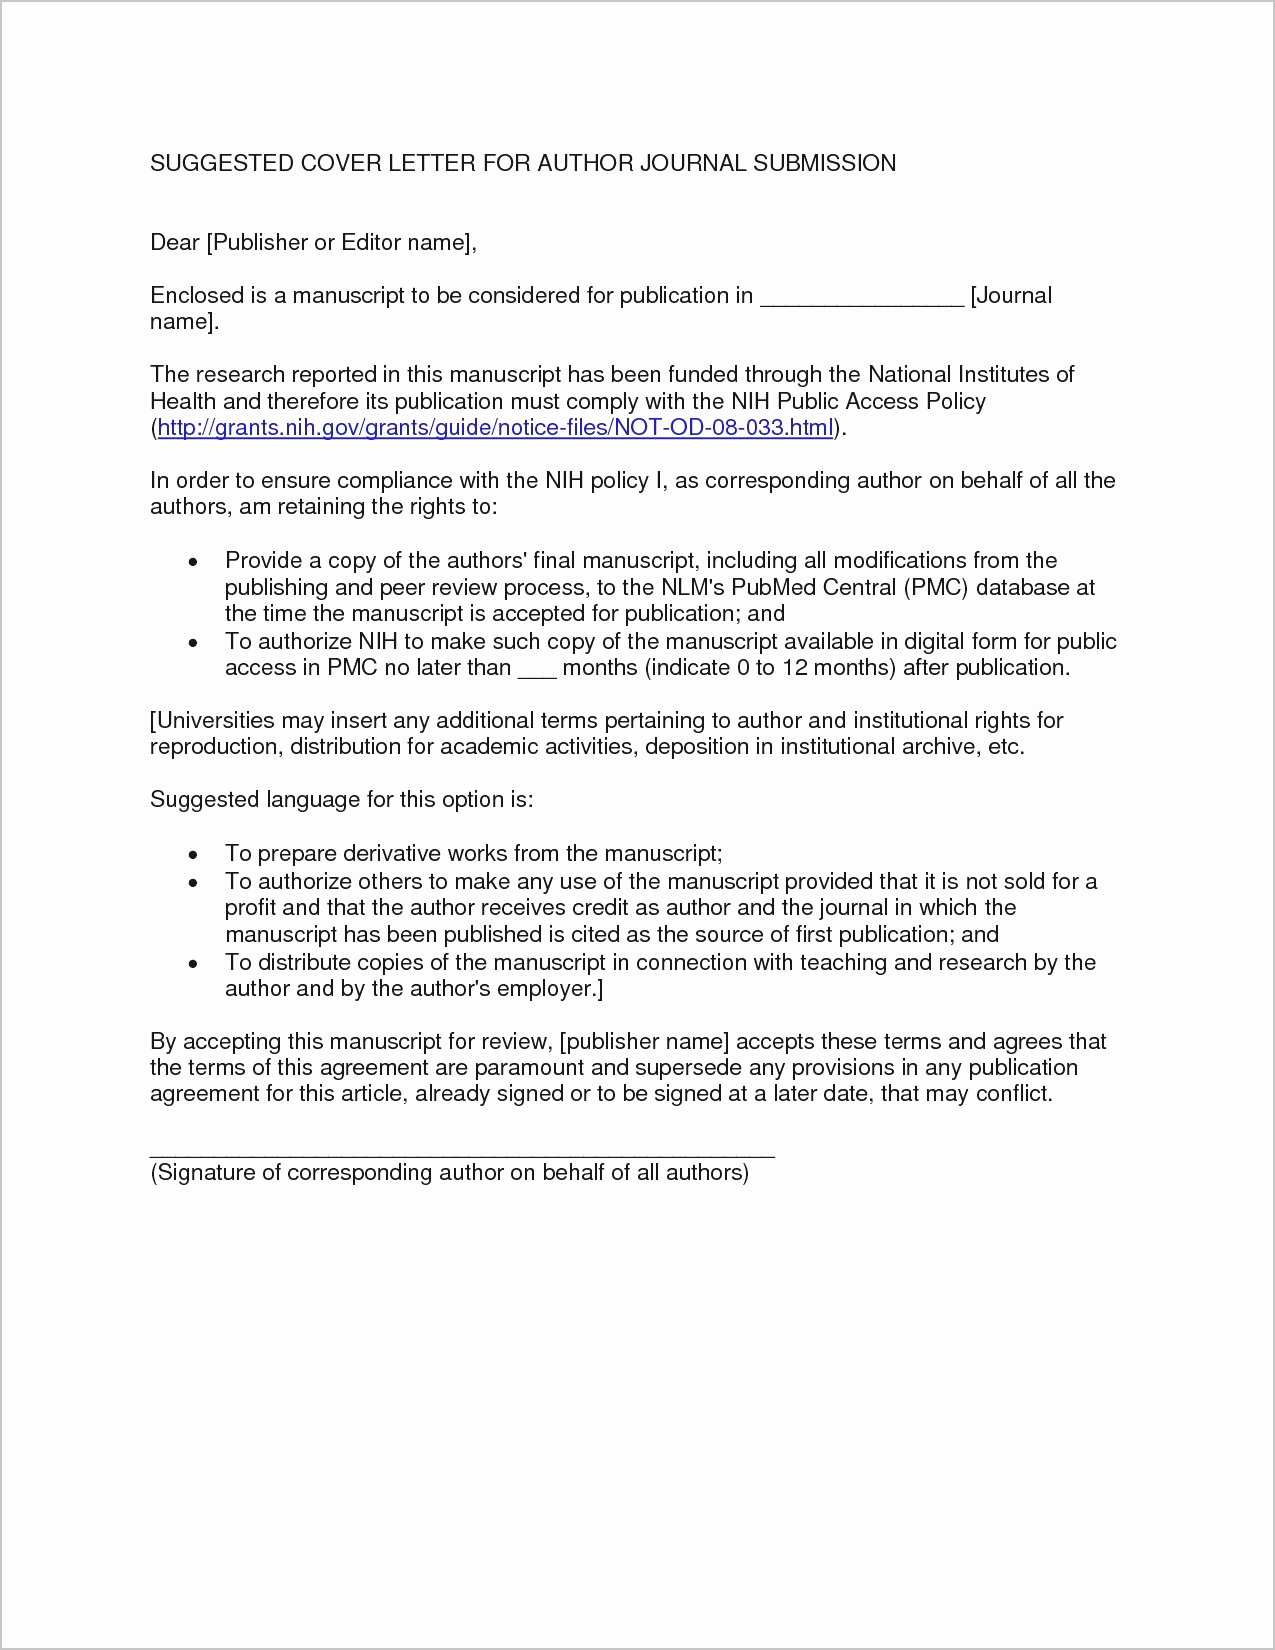 Free Cover Letter Template Google Docs - Free Newspaper Template Google Docs Lovely Cover Letter Template